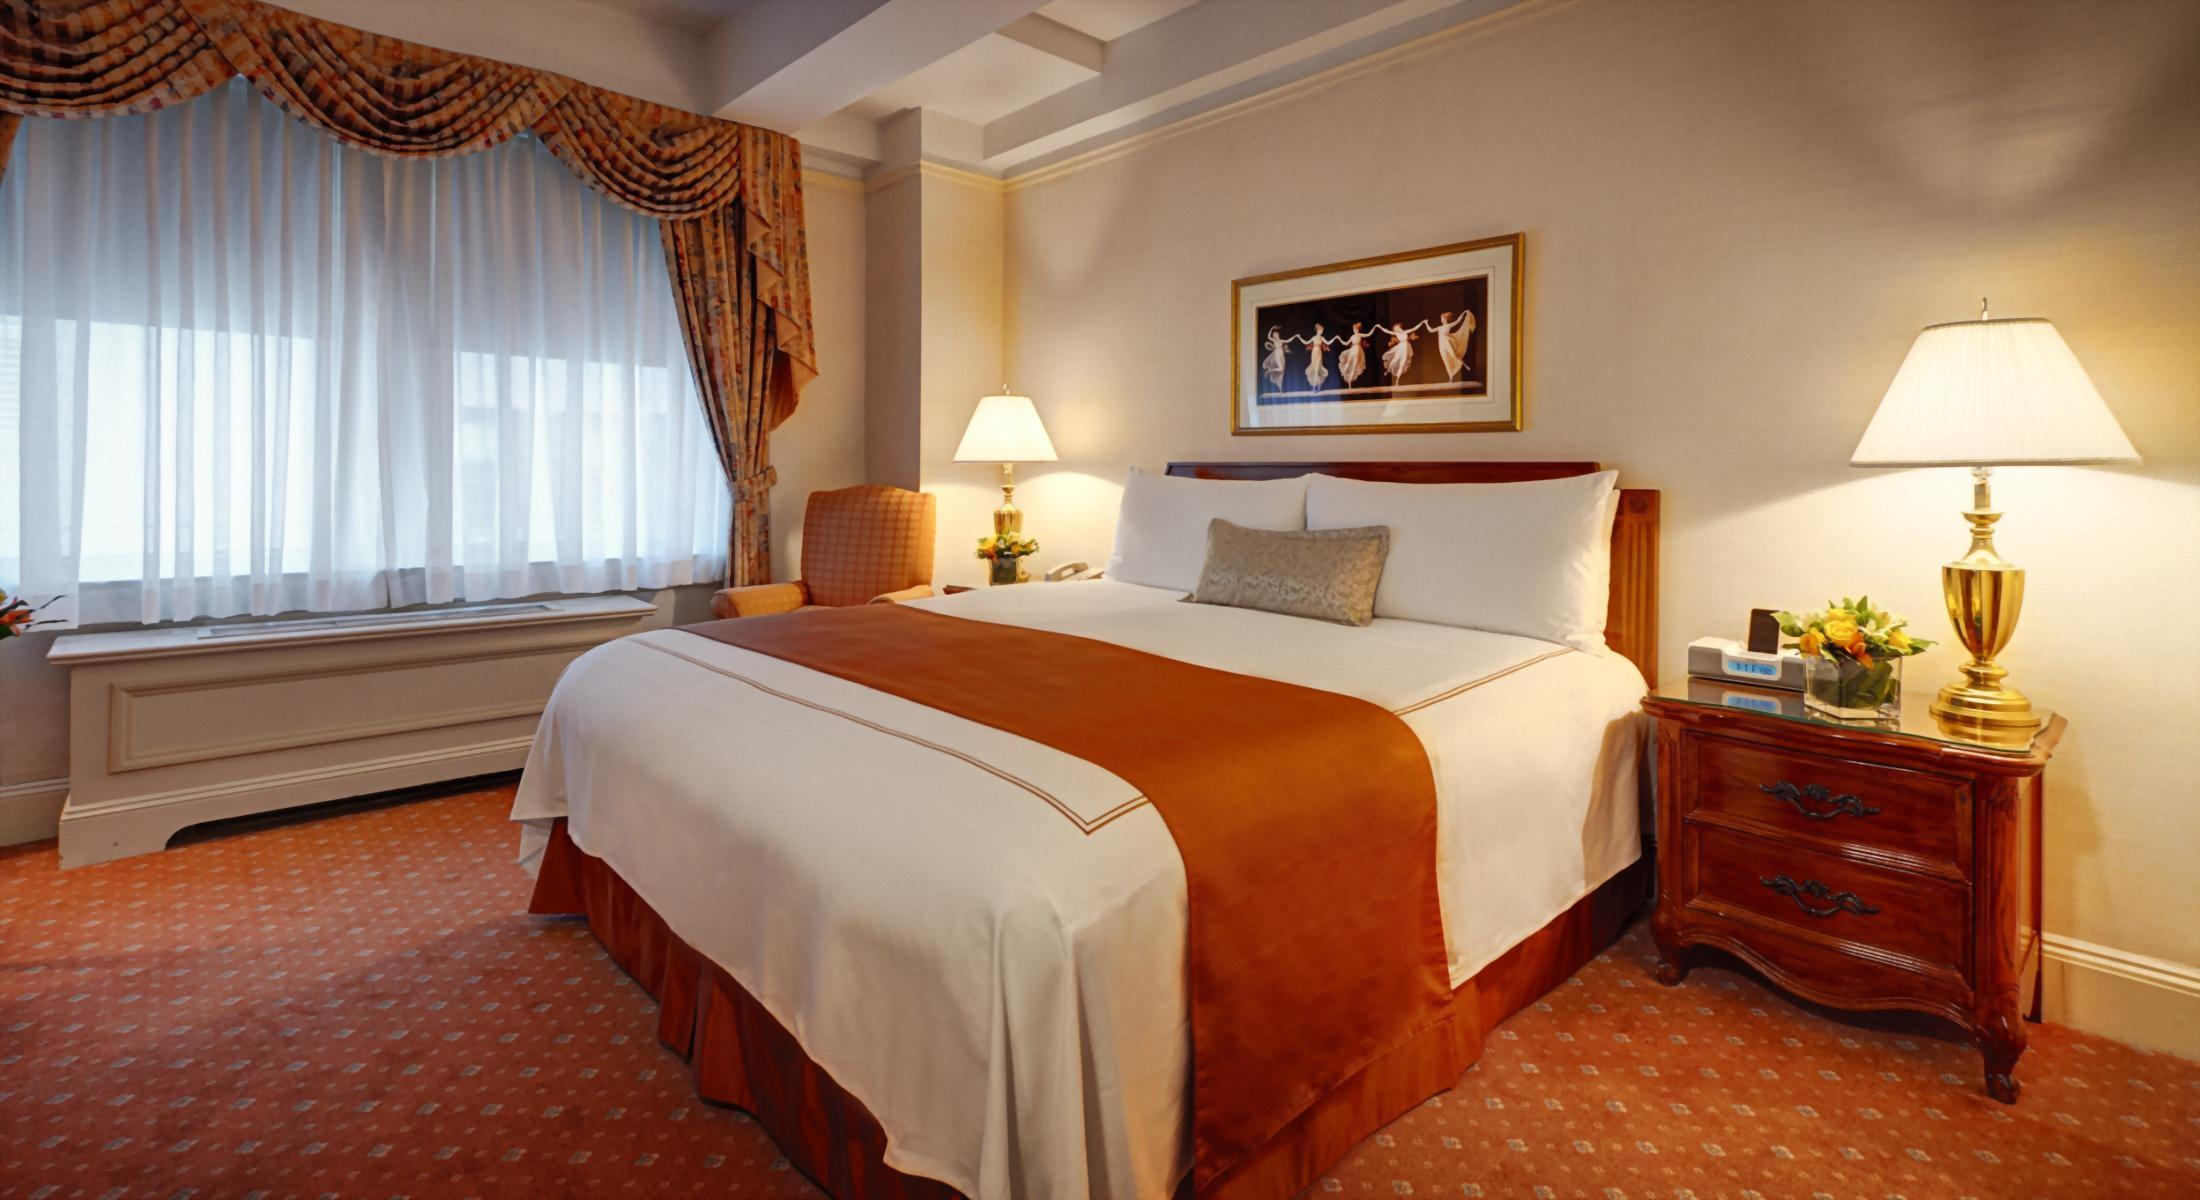 Deluxe King Room at the Hotel Elysee with 1 King Bed.  Approximately 300 square feet and comfortable for up to 2 adult guests.